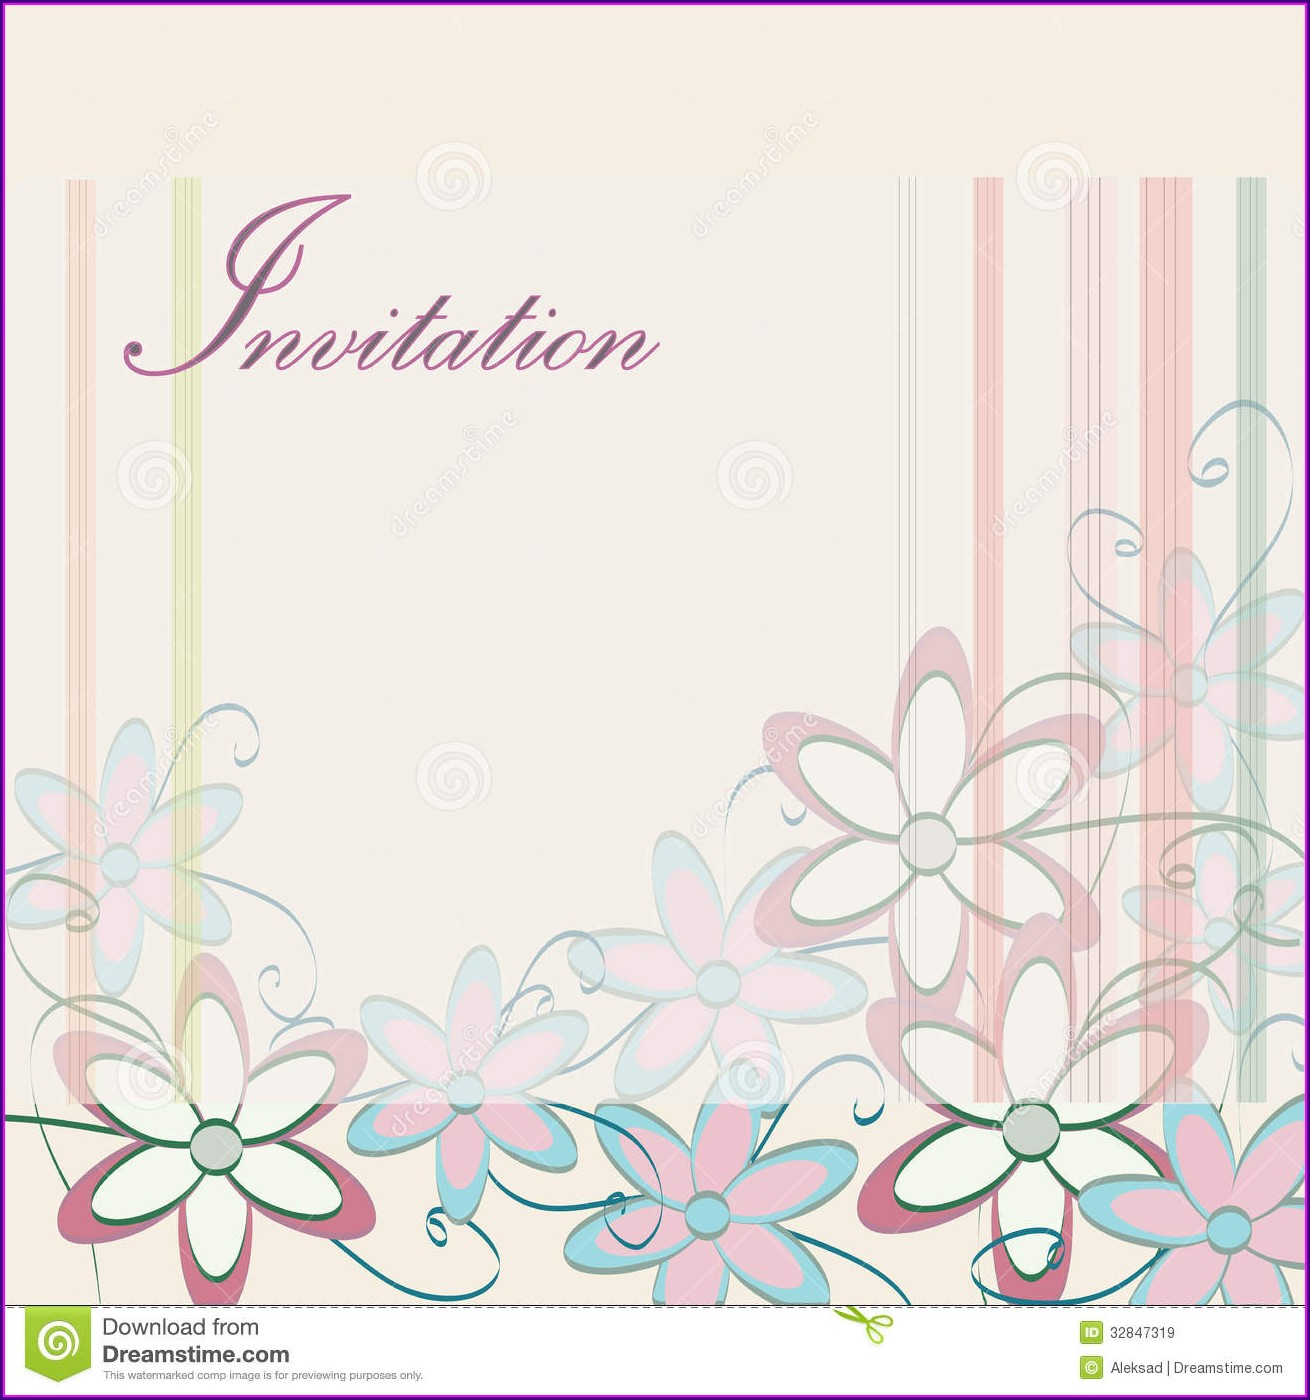 Free Online Invitation Card Design For Wedding